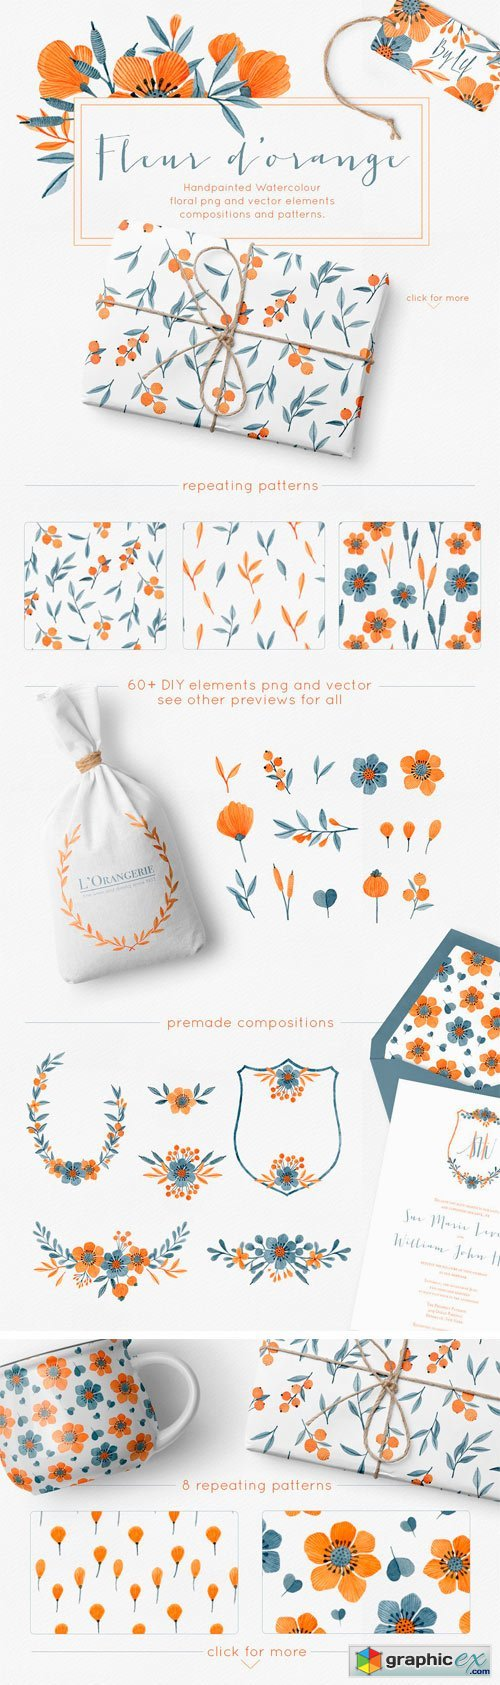 Floral Watercolor Graphics Bundle